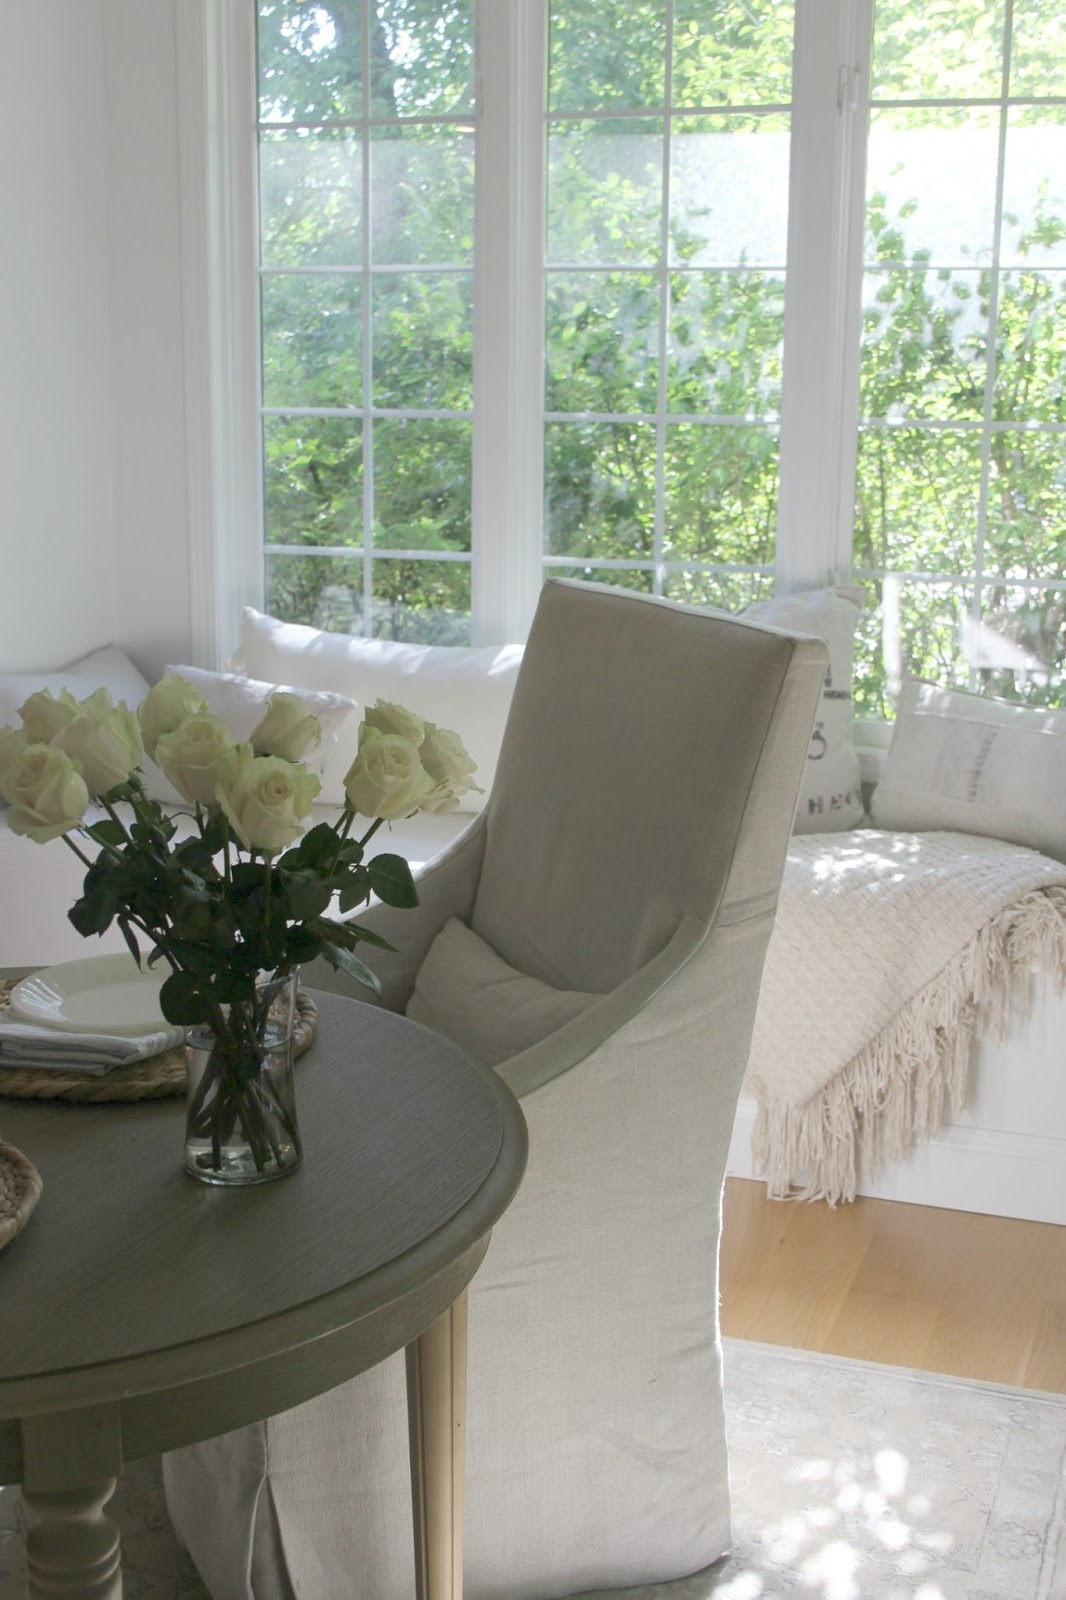 Window seat in white kitchen with dappled natural light, white roses, and European inspired decor. #hellolovelystudio #belgianlinen #windowseat